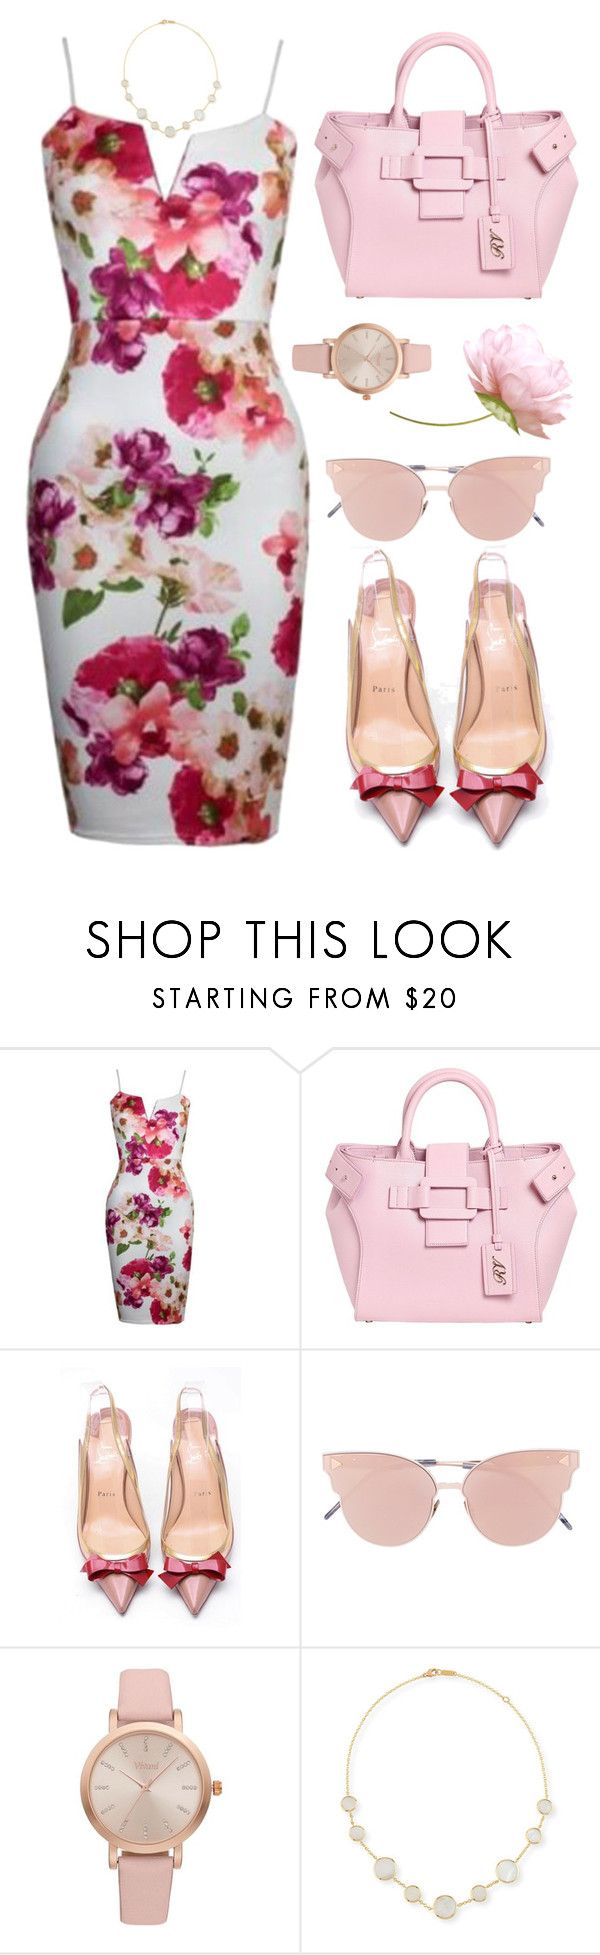 """""""Last Summer Days"""" by hiddensoulmemories ❤ liked on Polyvore featuring WithChic, Roger Vivier, Christian Louboutin, So.Ya, Vivani and Ippolita"""